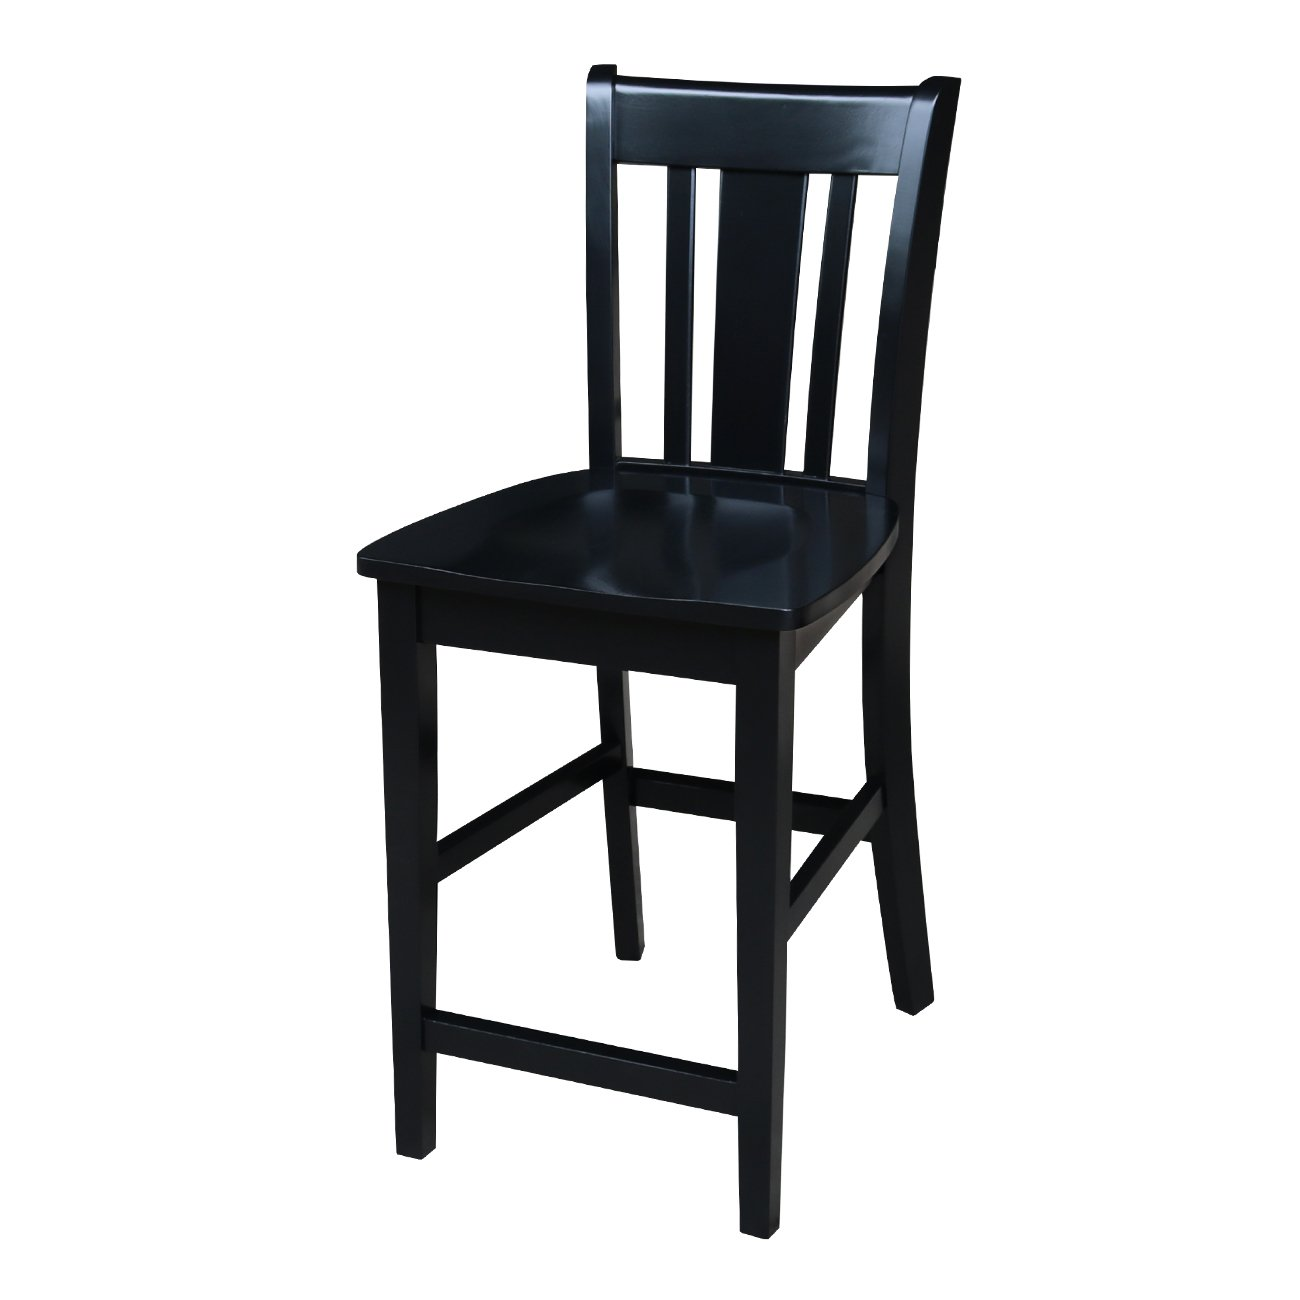 Awesome International Concepts San Remo Counter Height Stool 24 Inch Black Finish Caraccident5 Cool Chair Designs And Ideas Caraccident5Info